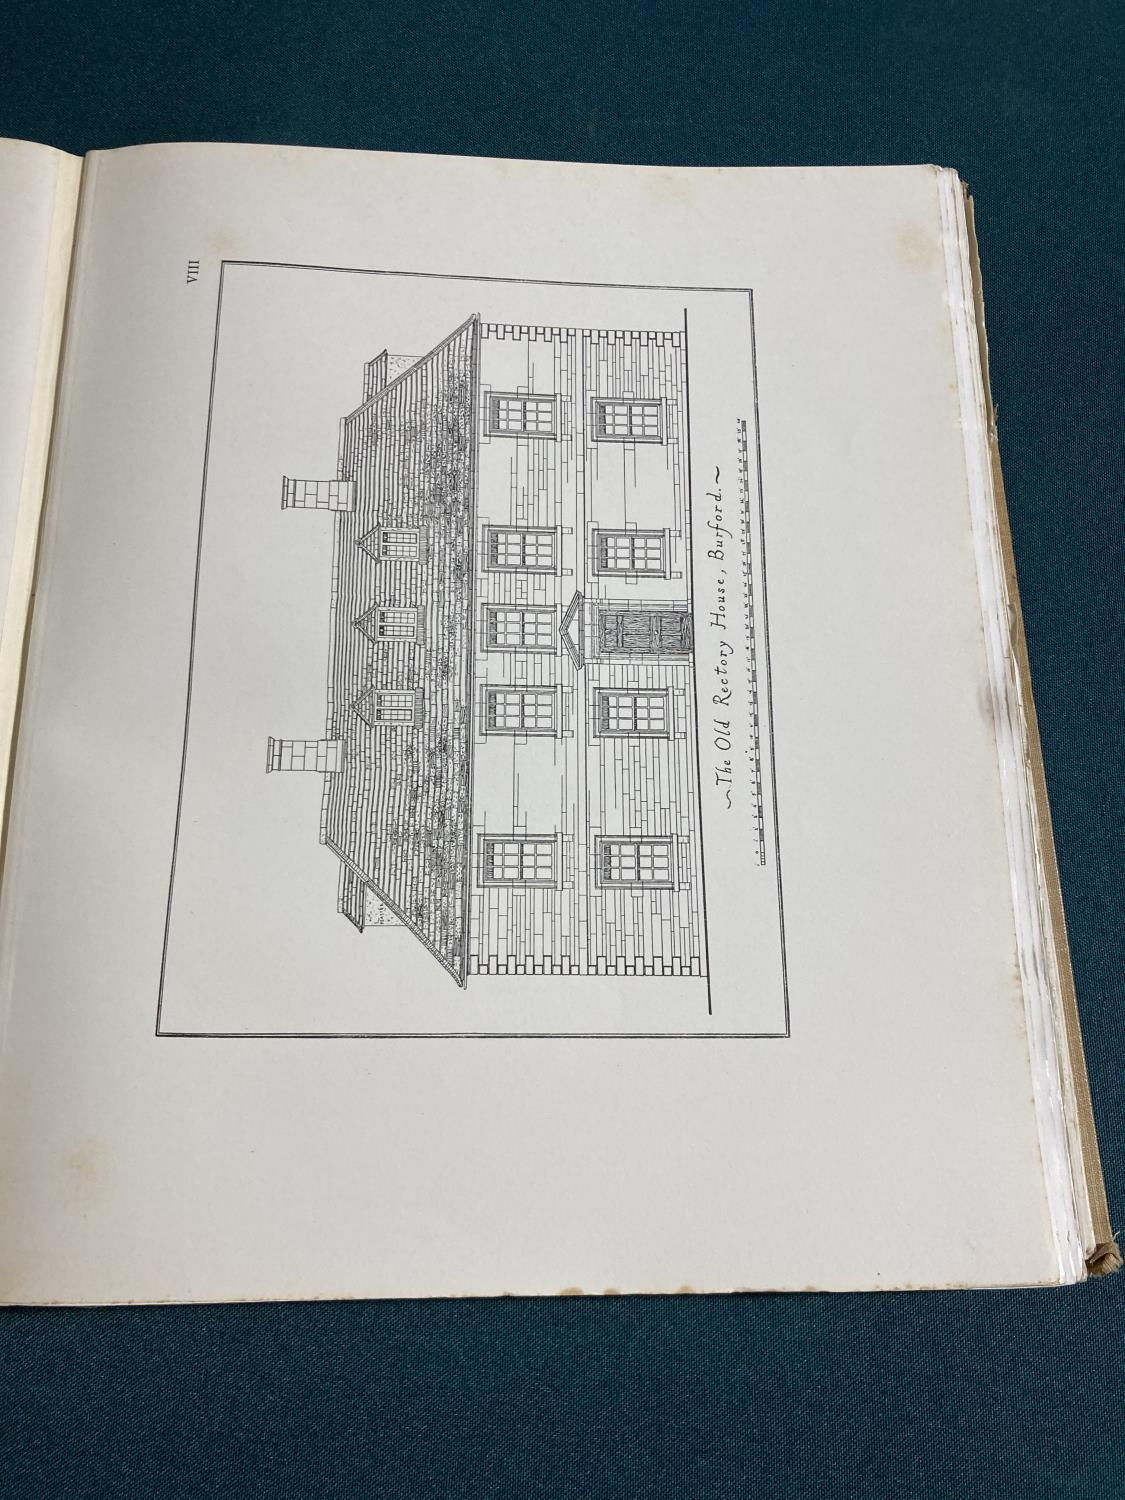 Bolton, Arthur T. The Architecture of Robert and James Adam, 2 volumes, first edition, plates, - Image 9 of 22